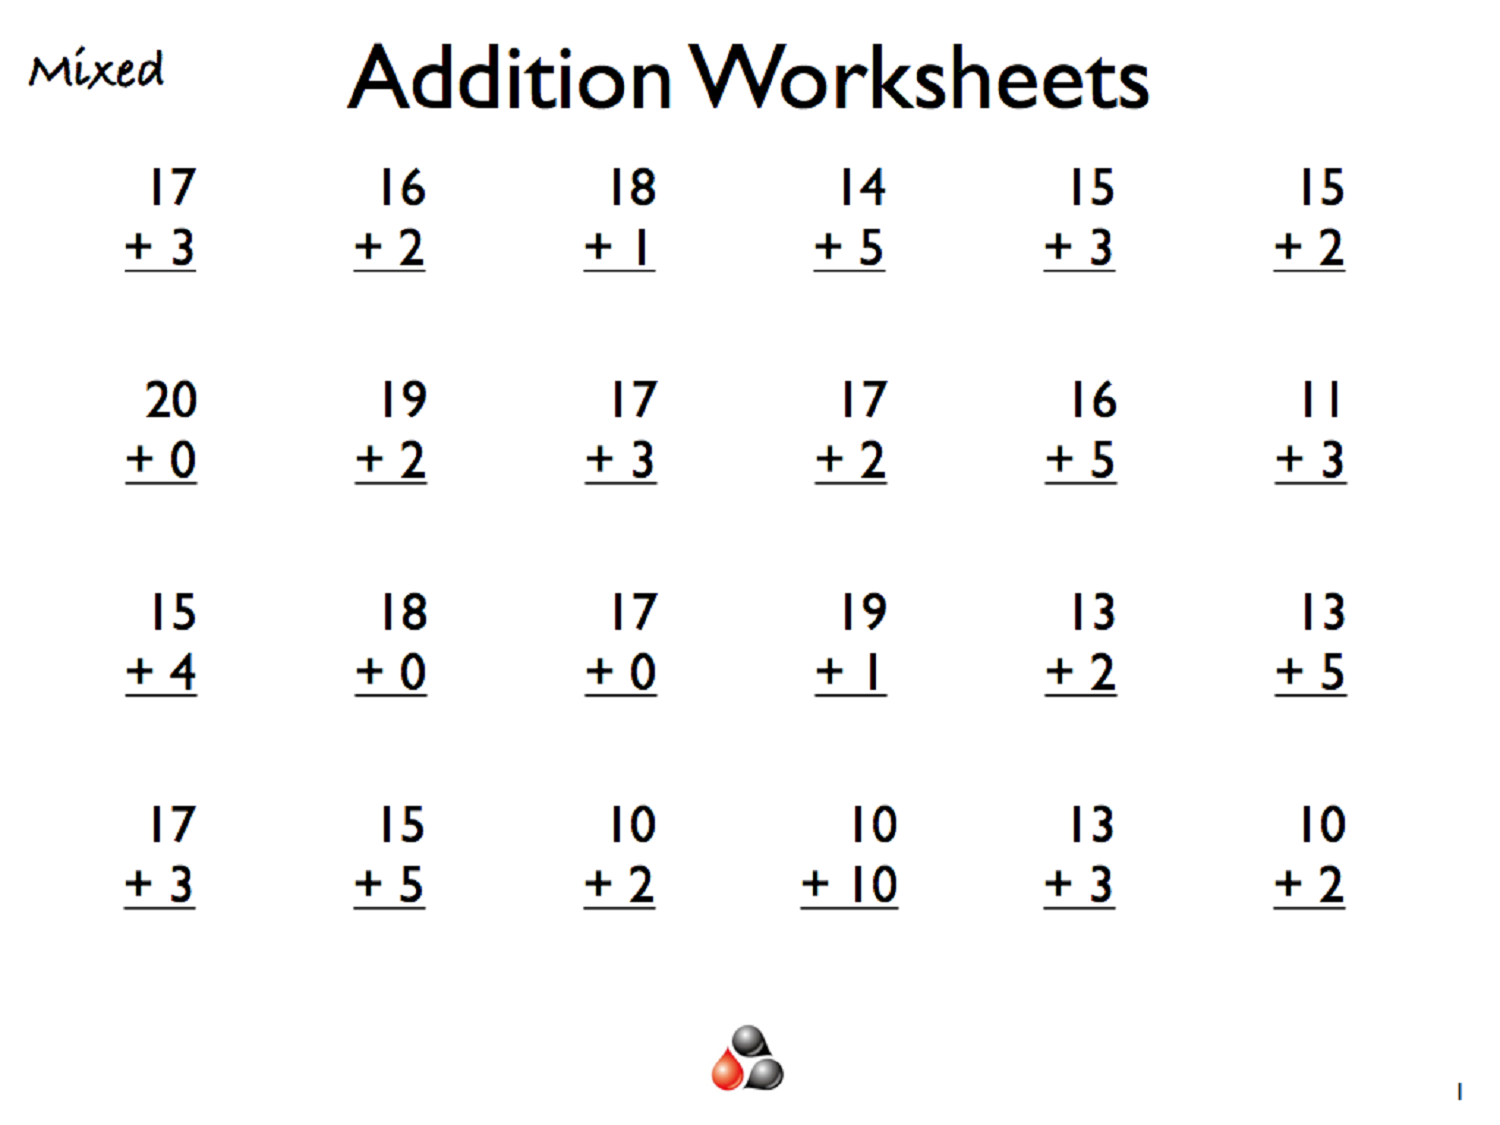 Addition For Worksheets For Grade 1 Is Helpful Educative Media – Addition and Subtraction Worksheets Kindergarten